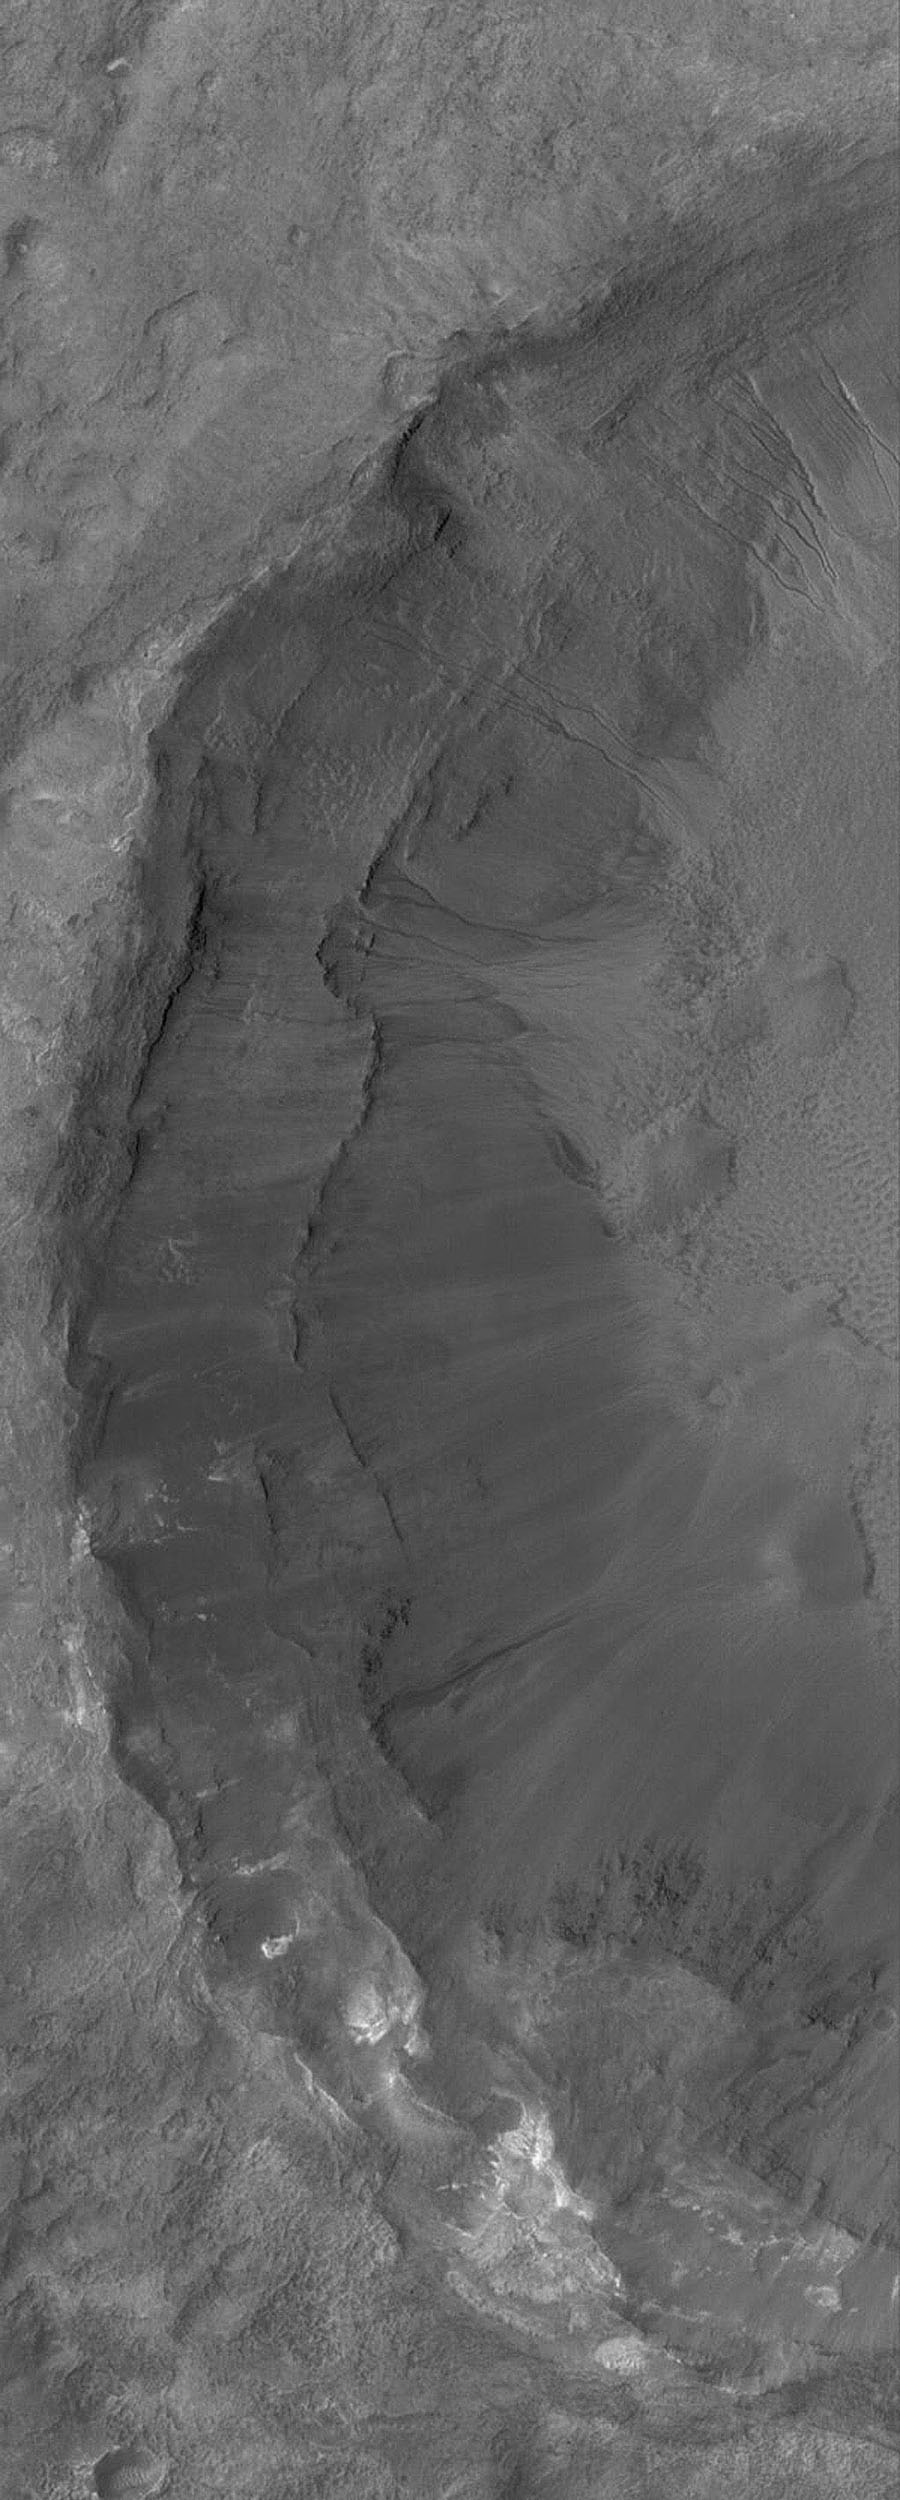 NASA's Mars Global Surveyor shows gullies formed in the terraced wall of an impact crater on the floor of a larger crater on Mars.